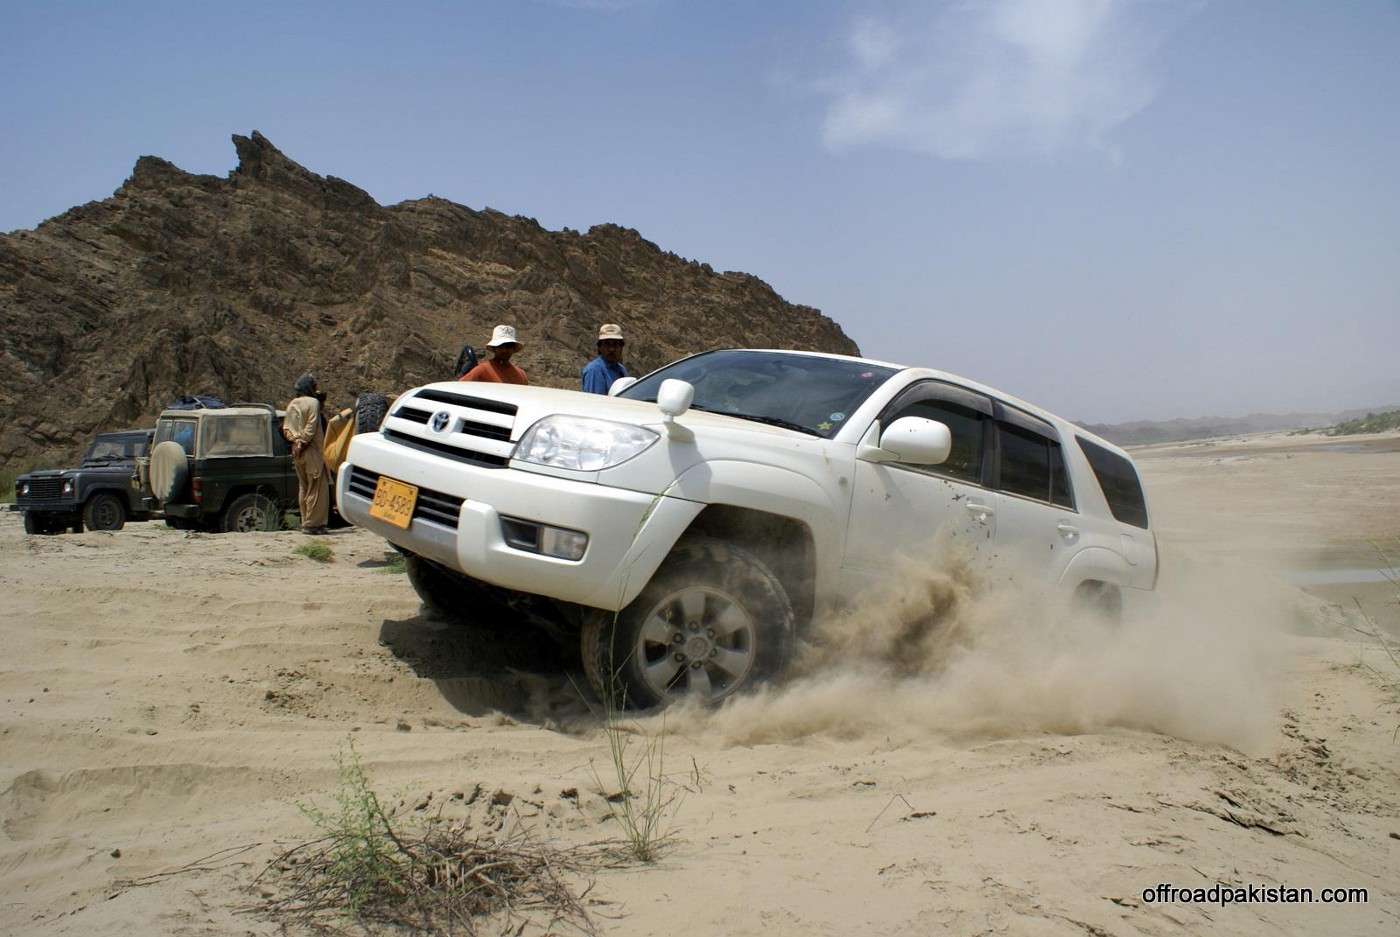 Jeeps in Pakistan - Offroad Pakistan - Medium